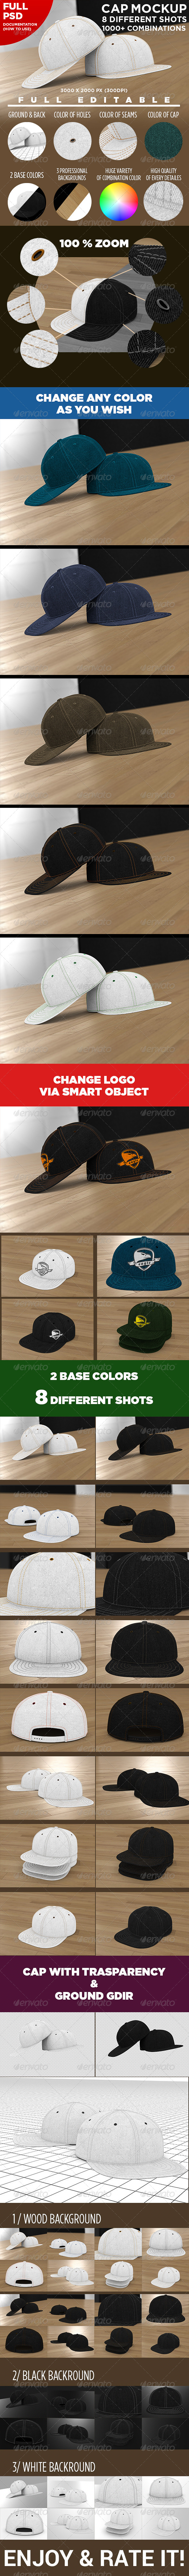 Professional Baseball Cap Mock-up - Miscellaneous Apparel